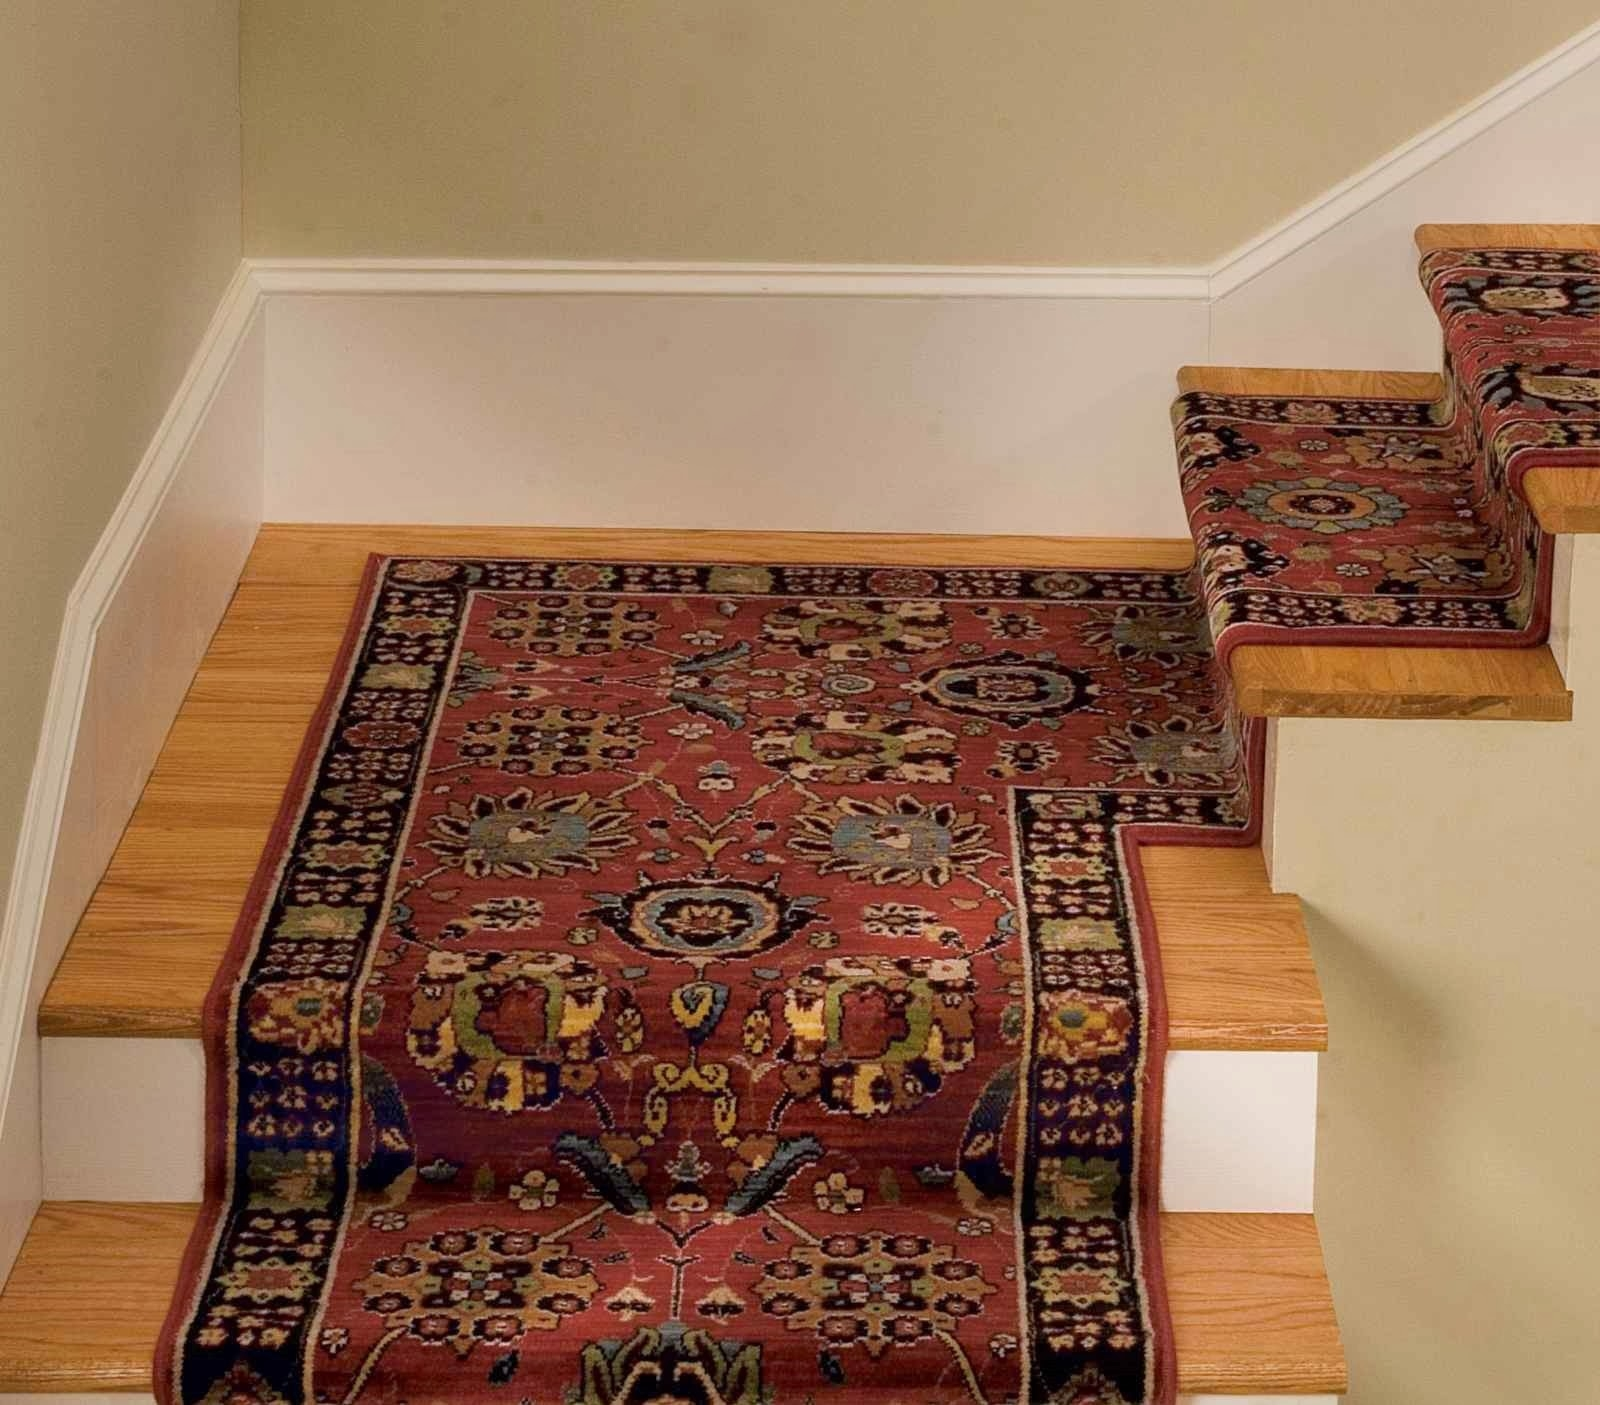 Staircase Tread Rugs Roll Rug Runner Area Rugs Stair Treads In Braided Stair Tread Rugs (Image 14 of 15)